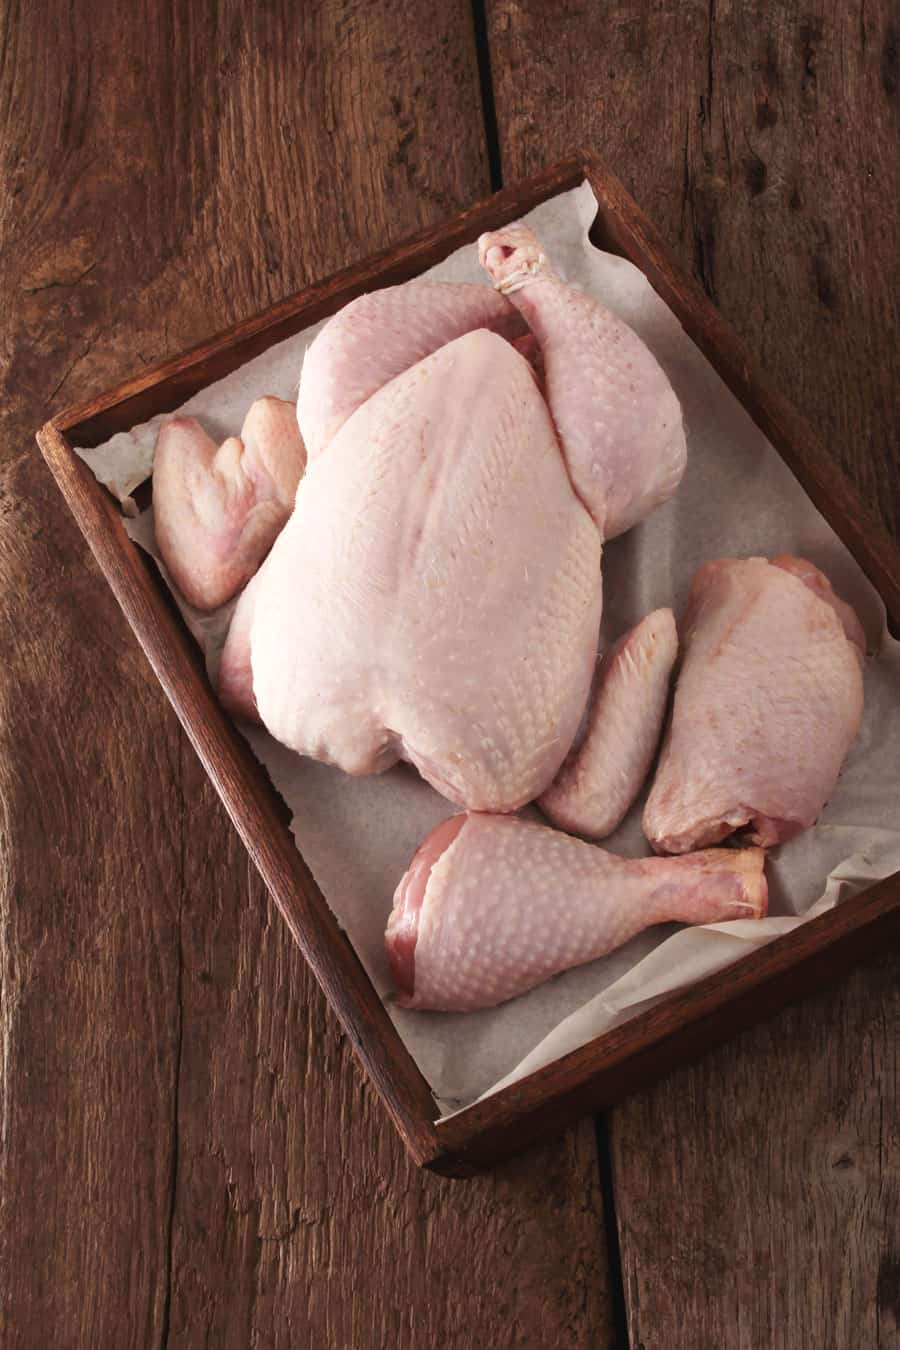 Is eating organic, humanely raised meat important to you? Click here to see how you can raise your own meat chickens to get the best quality possible. Raising meat chickens | Homesteading | Organic Chicken